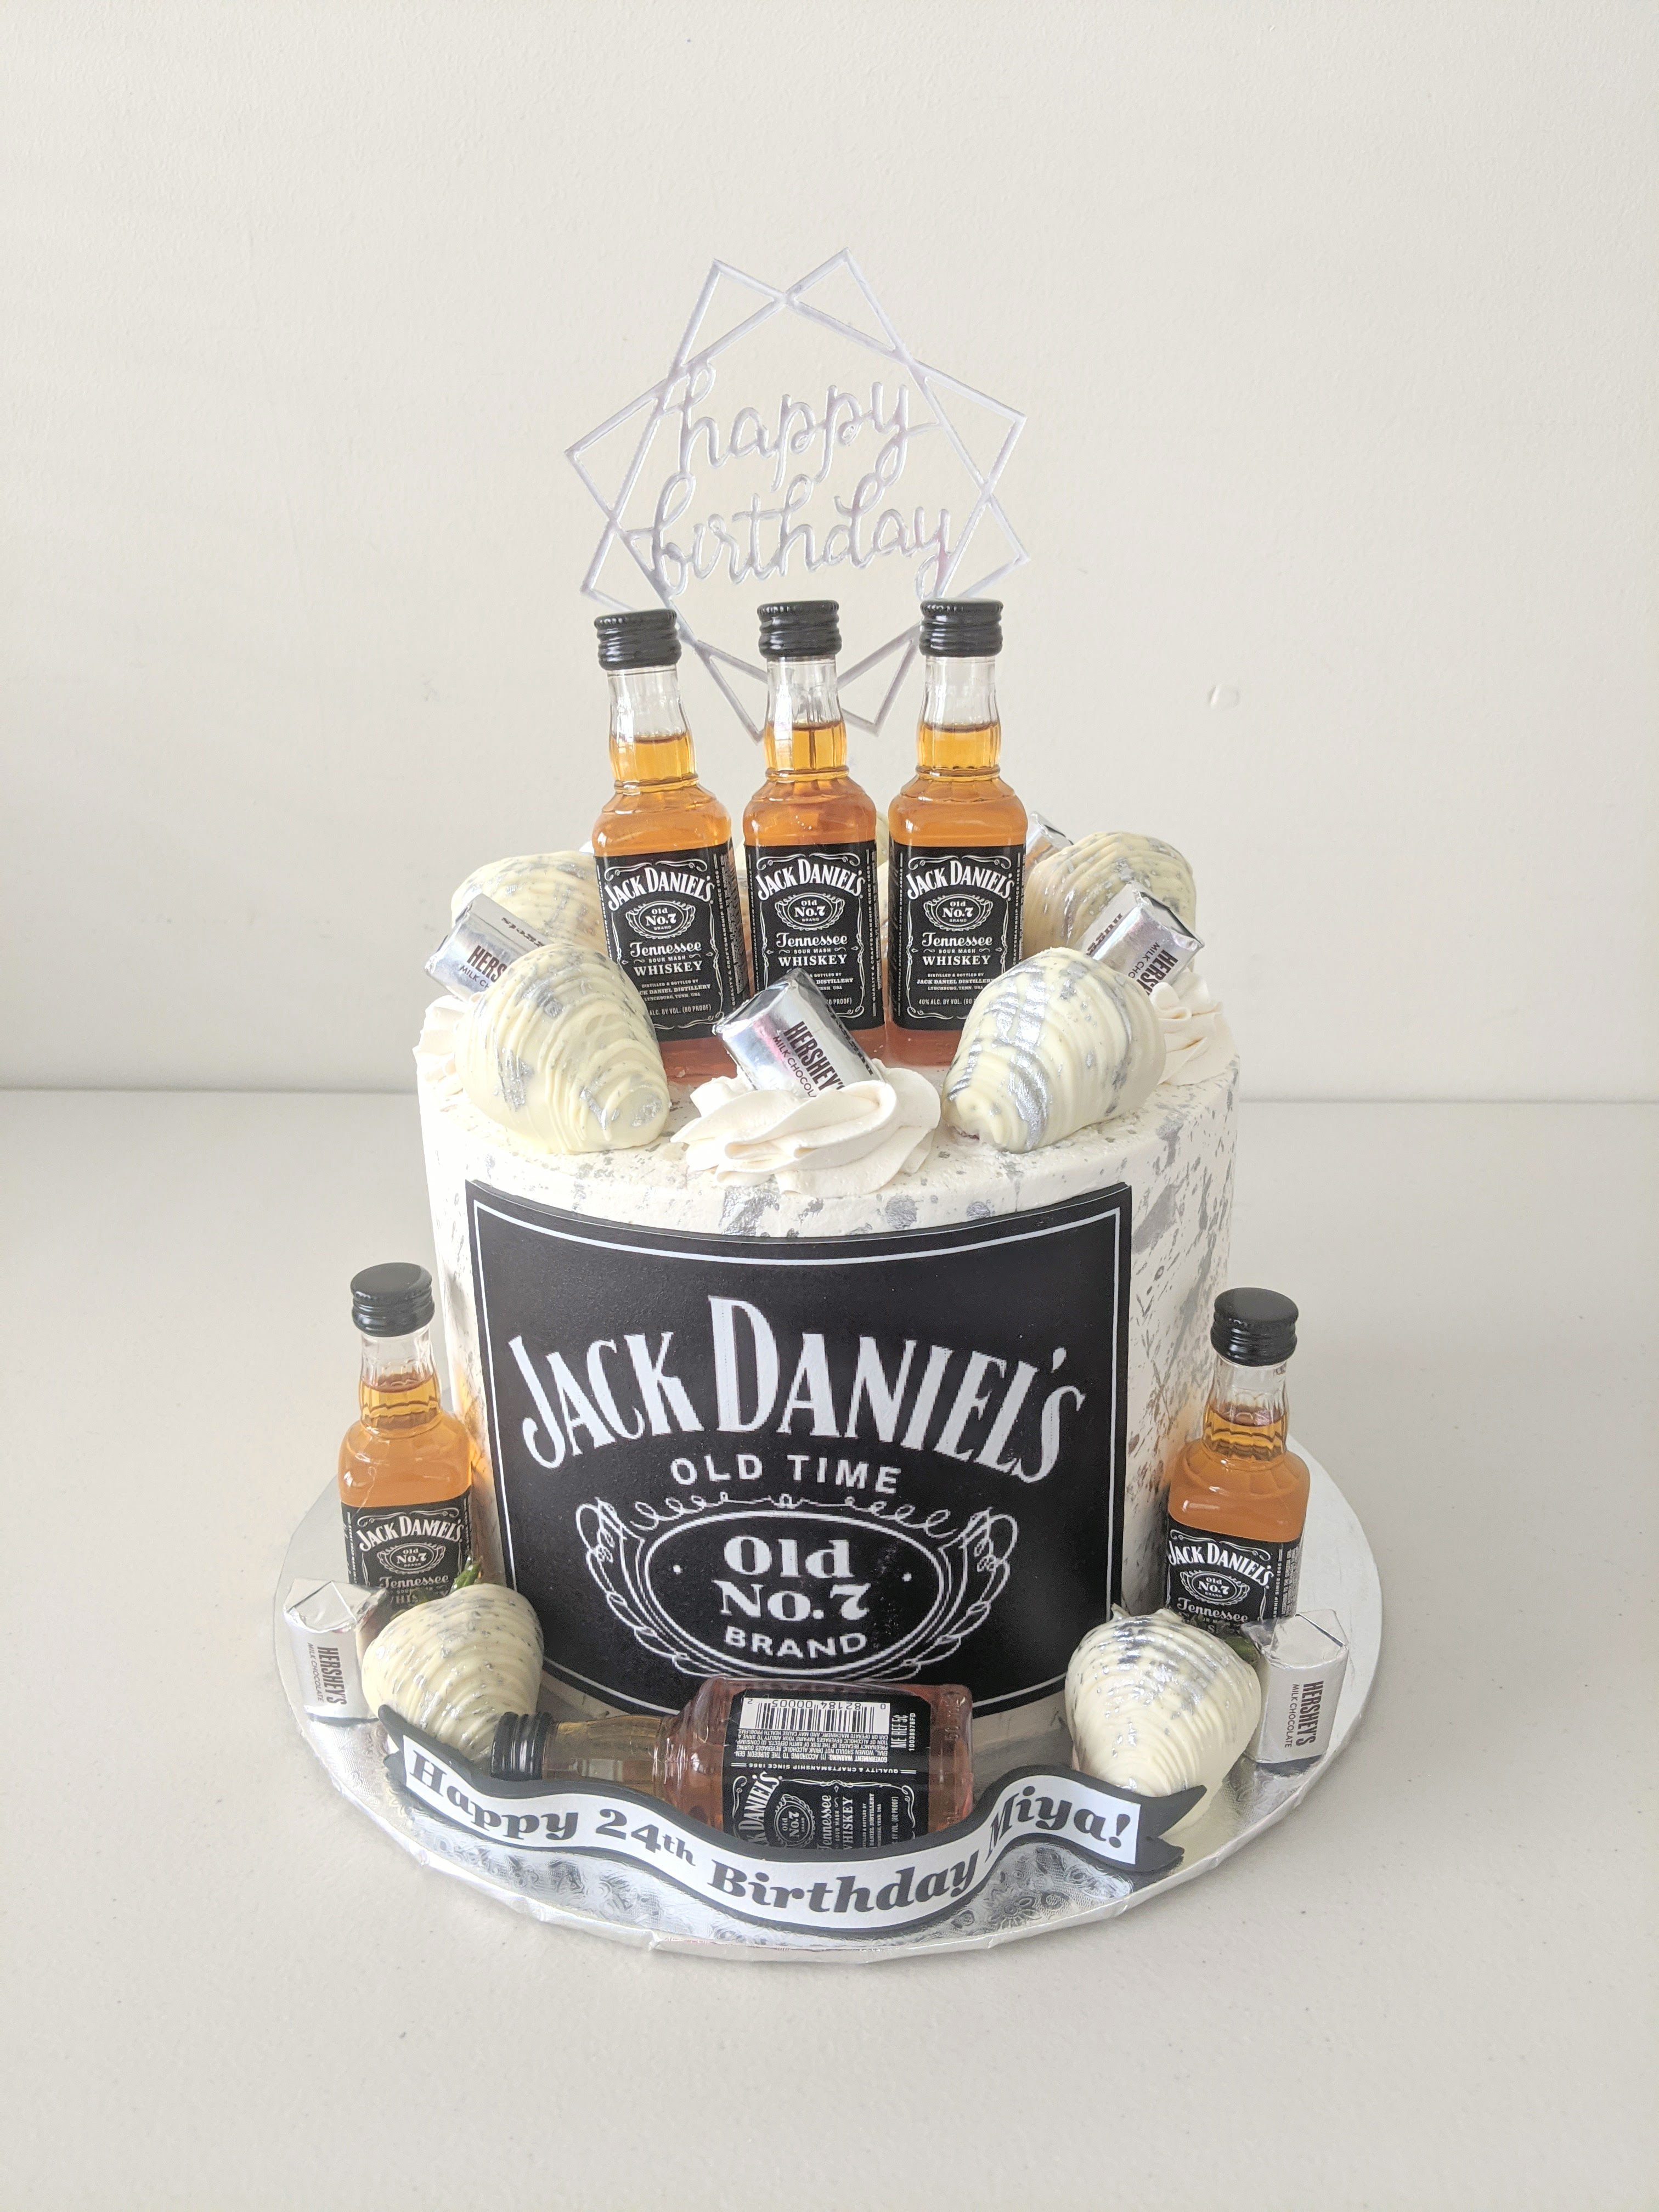 Jack Daniels Adult Beverage Cake